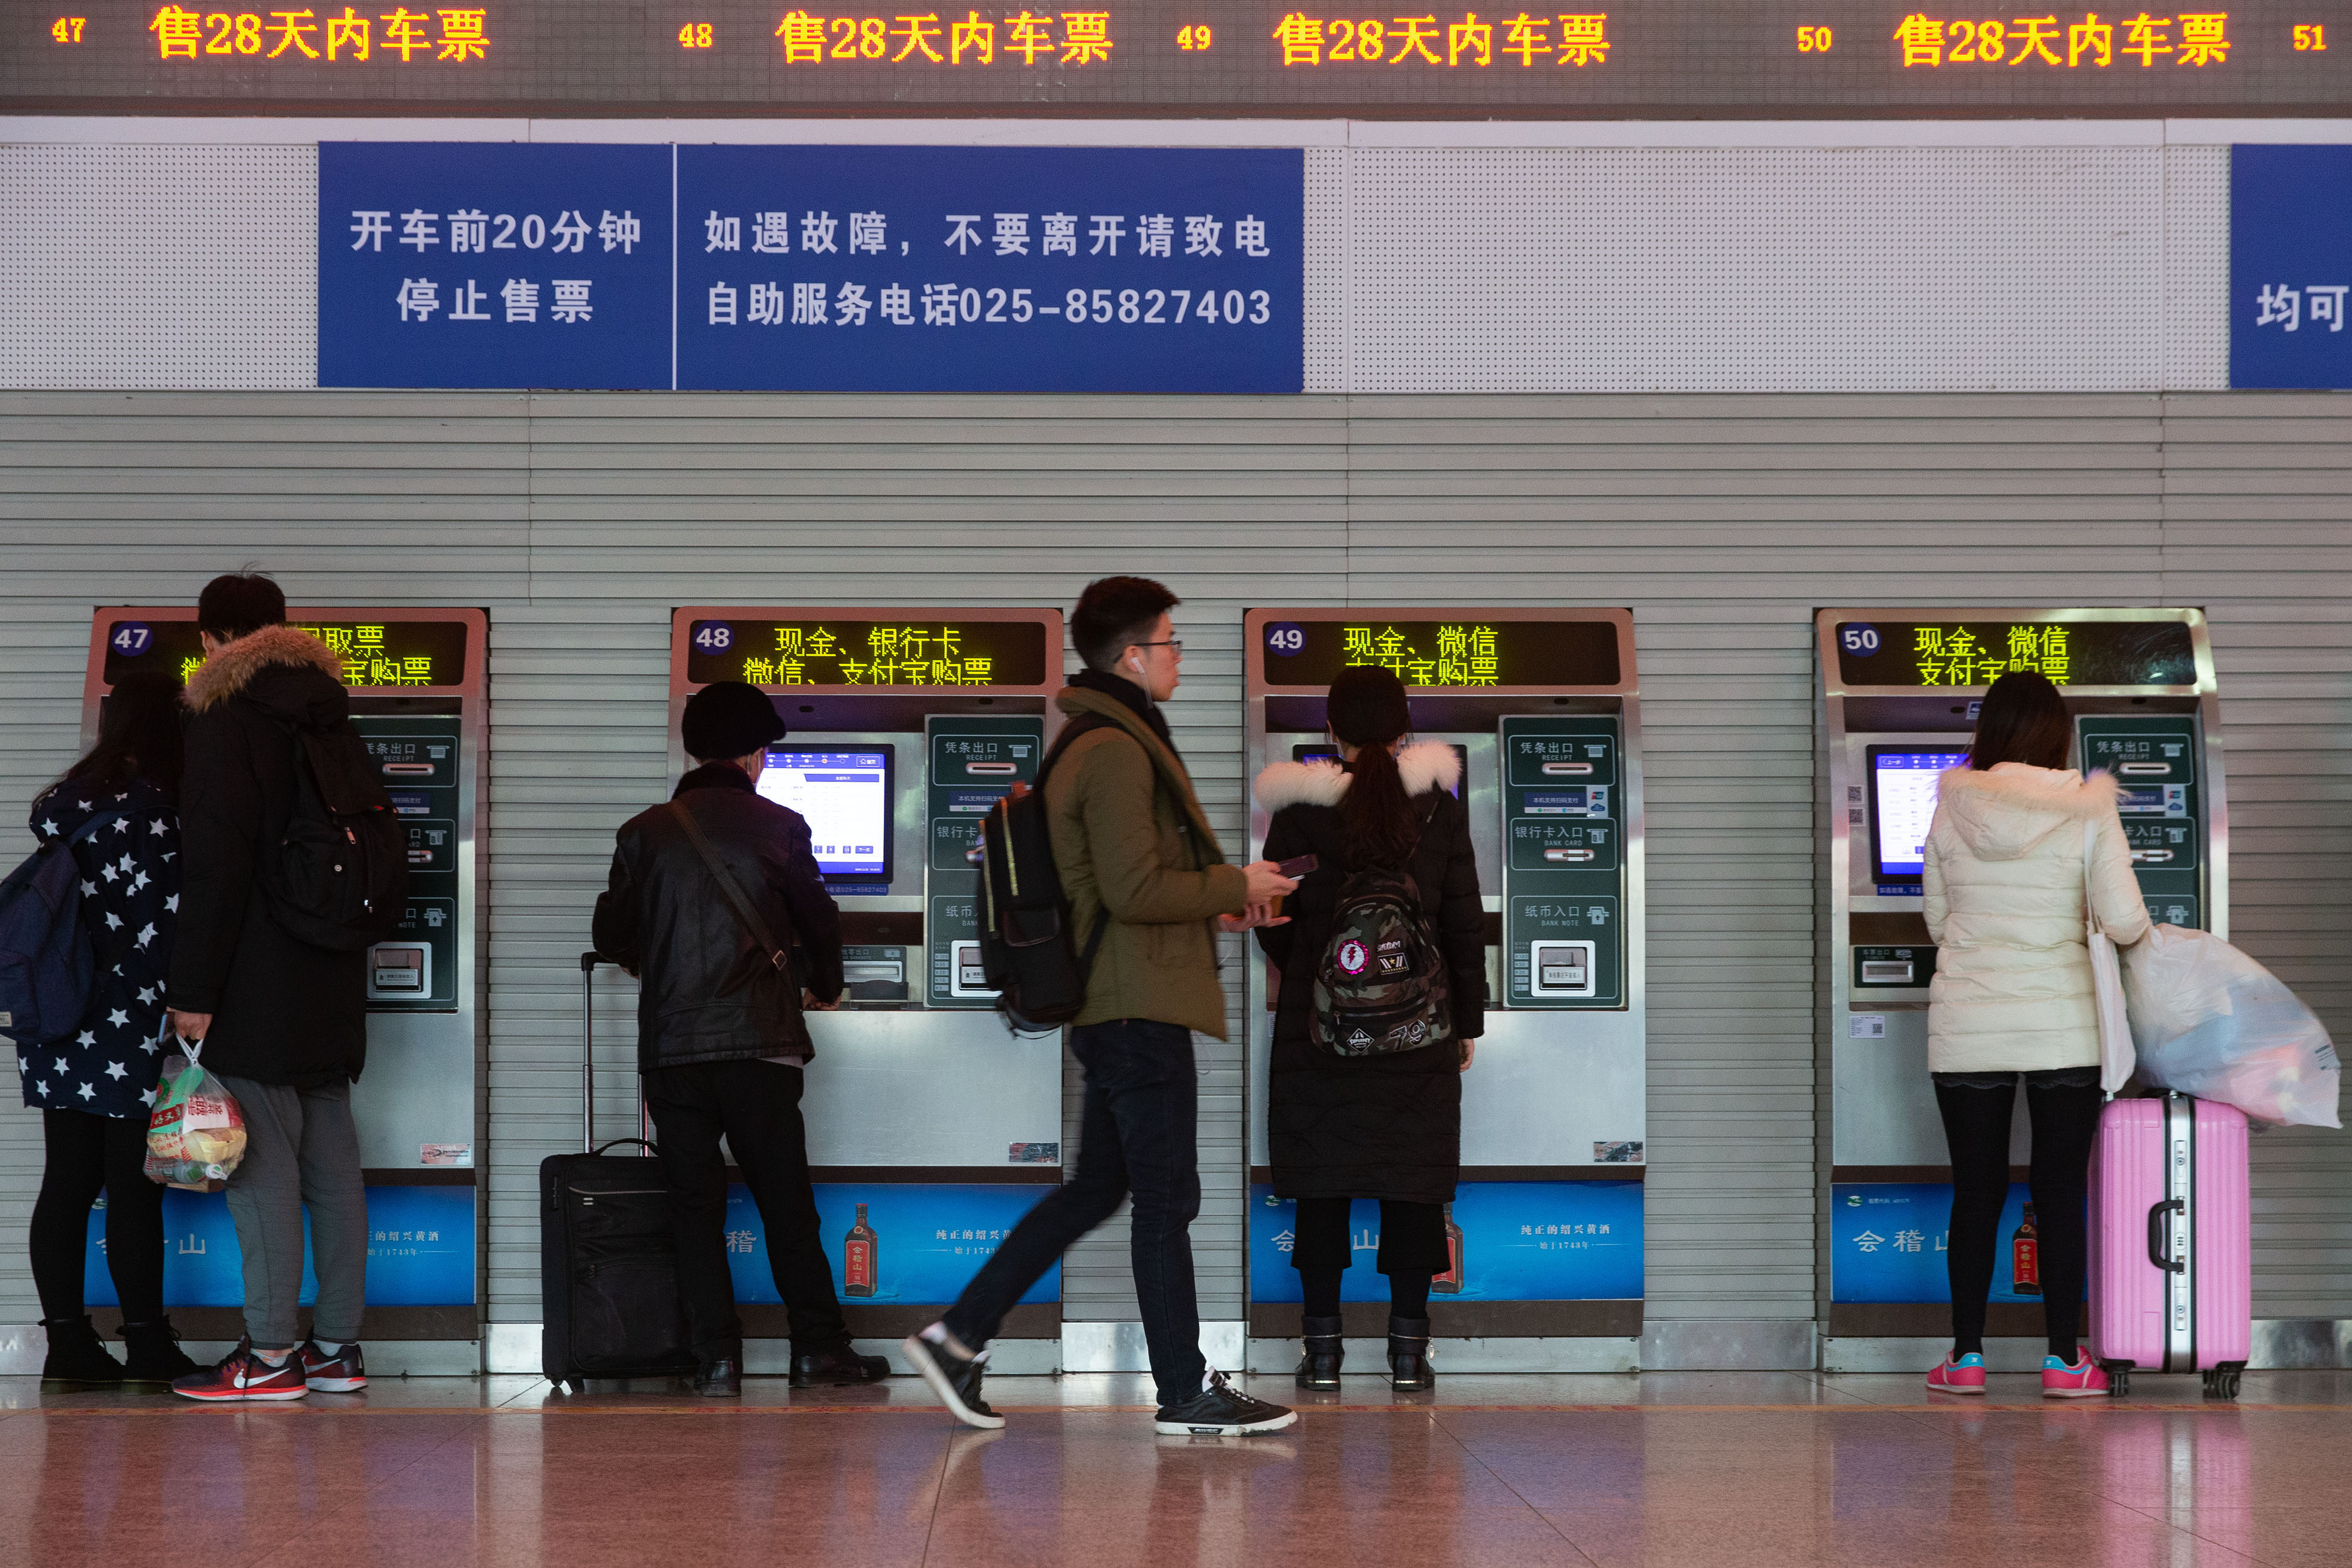 Train tickets go on sale for first day of Spring Festival holiday